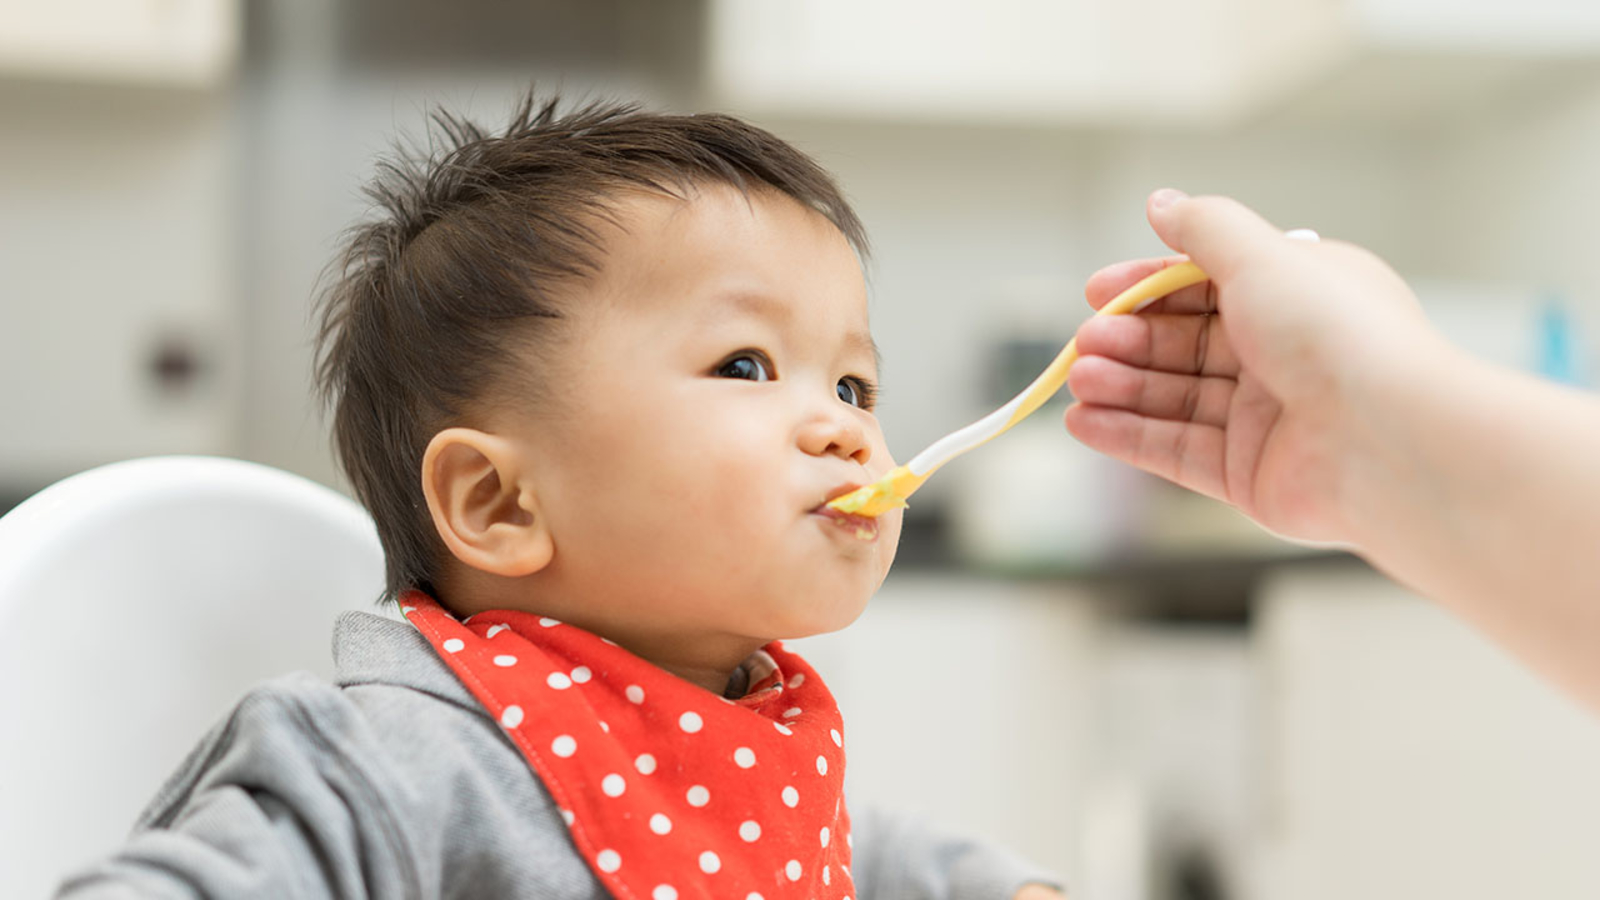 Toxic metals including arsenic, lead found in popular baby foods: Report